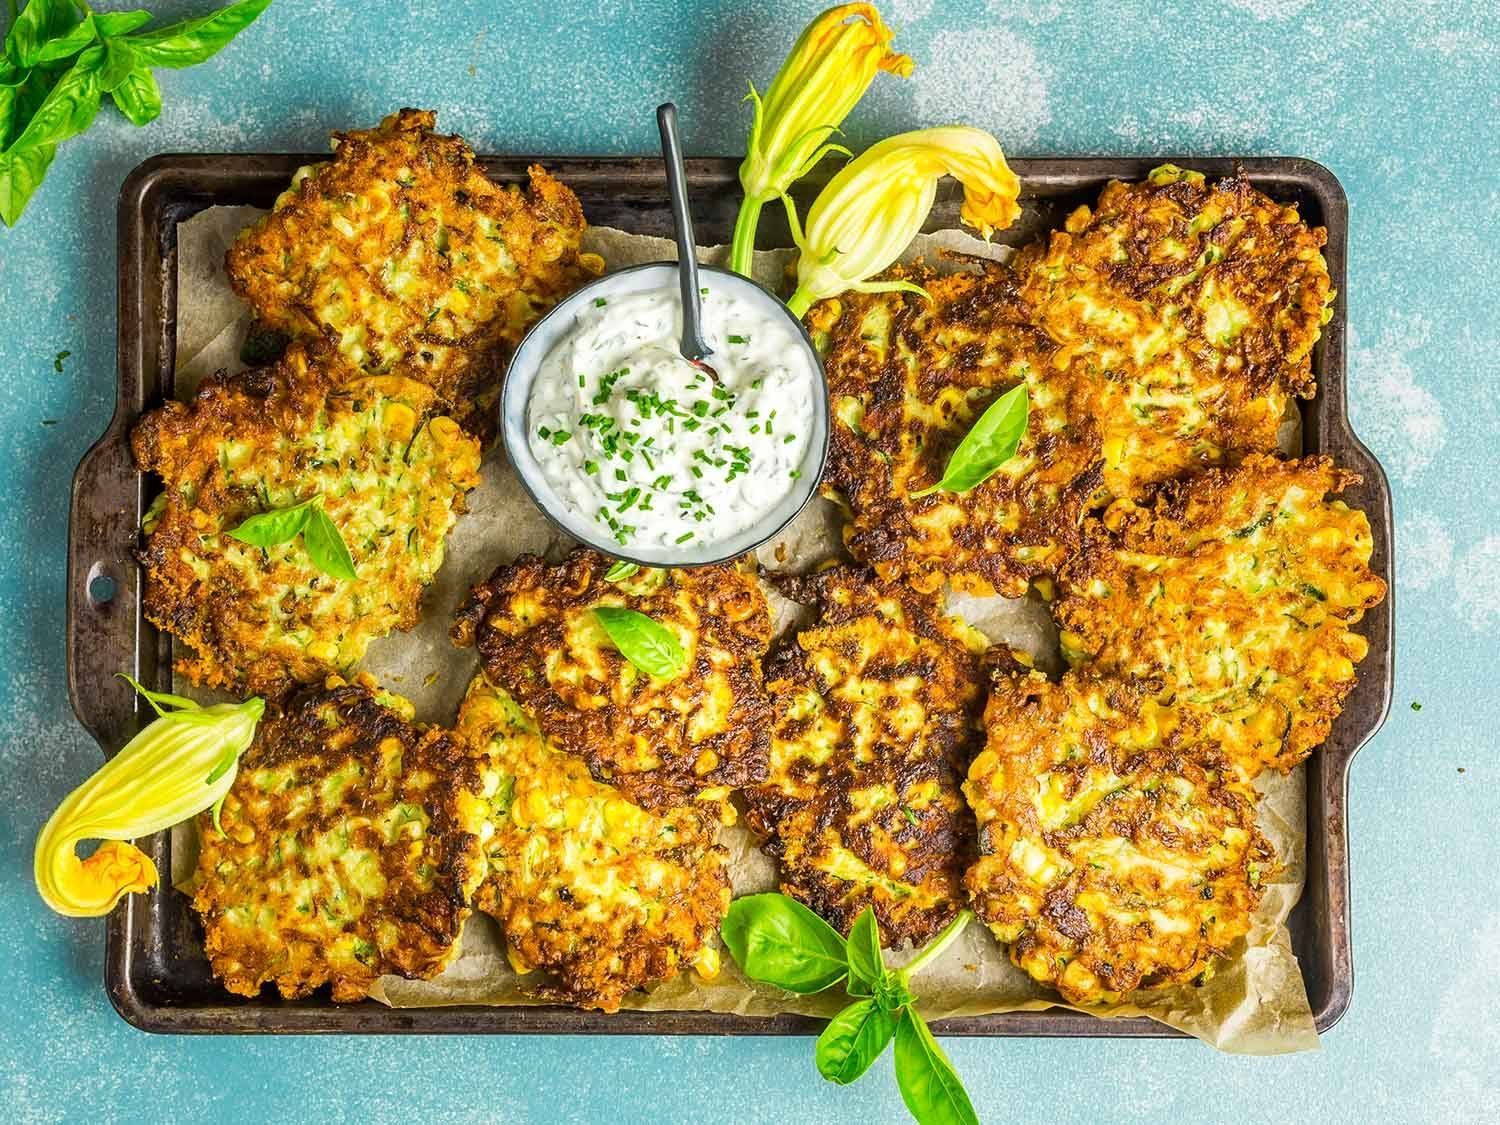 Zucchini And Corn Fritters With Herb Sour Cream Recipe Recipe Sour Cream Recipes Fritters Serious Eats